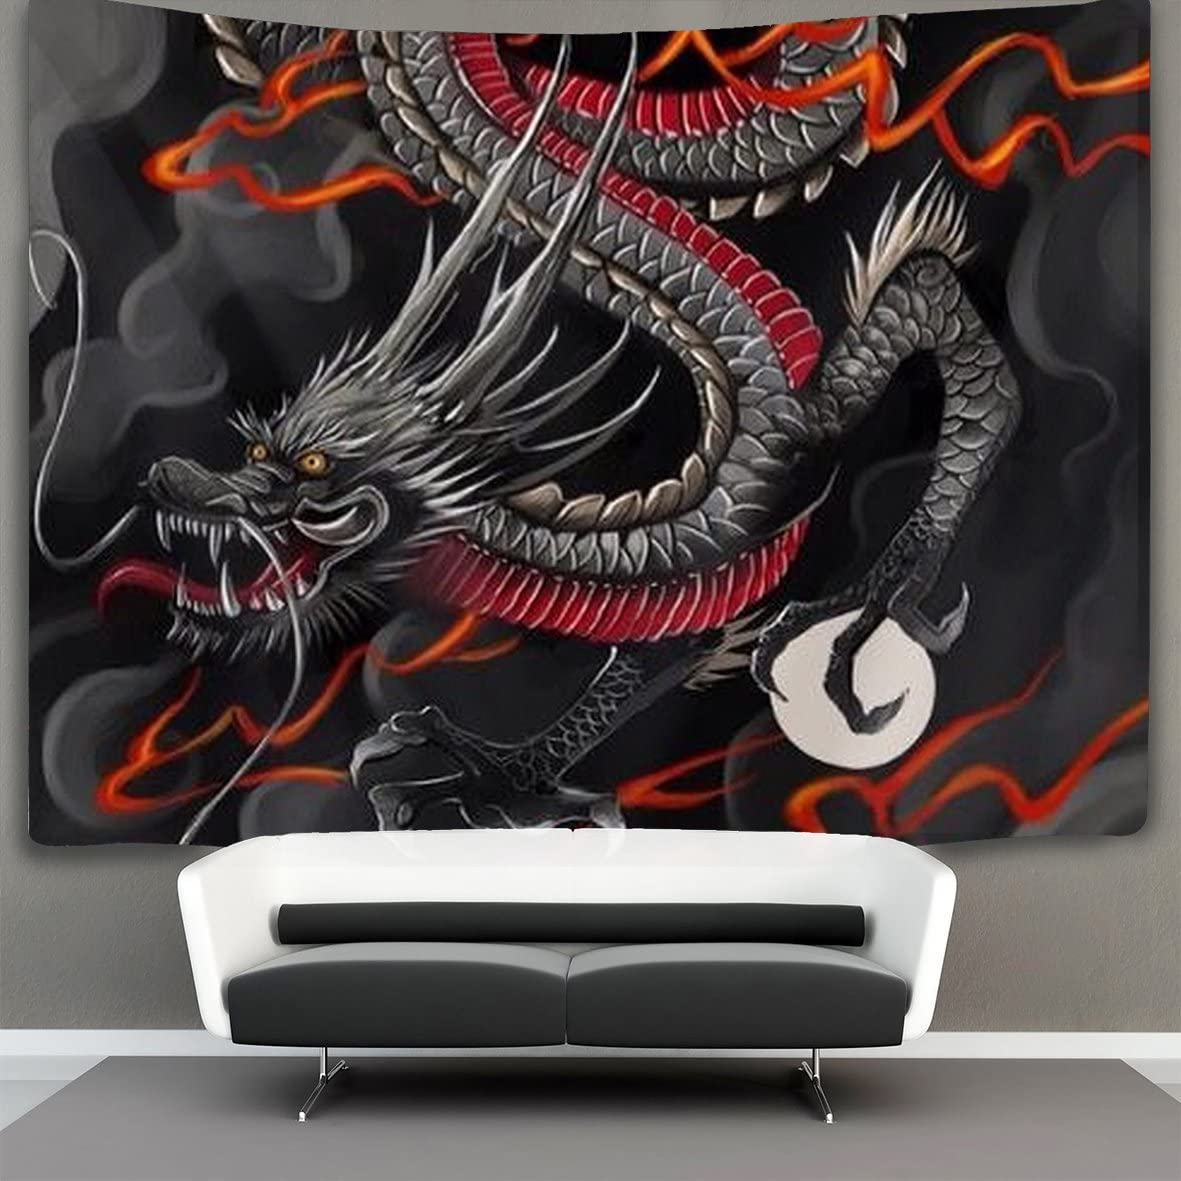 NiYoung Black red Chinese Dragon Dragon Ball Art Wall Tapestry Hippie Art Tapestry Wall Hanging Home Decor Extra Large tablecloths 60×90 inches for Bedroom Living Room Dorm Room